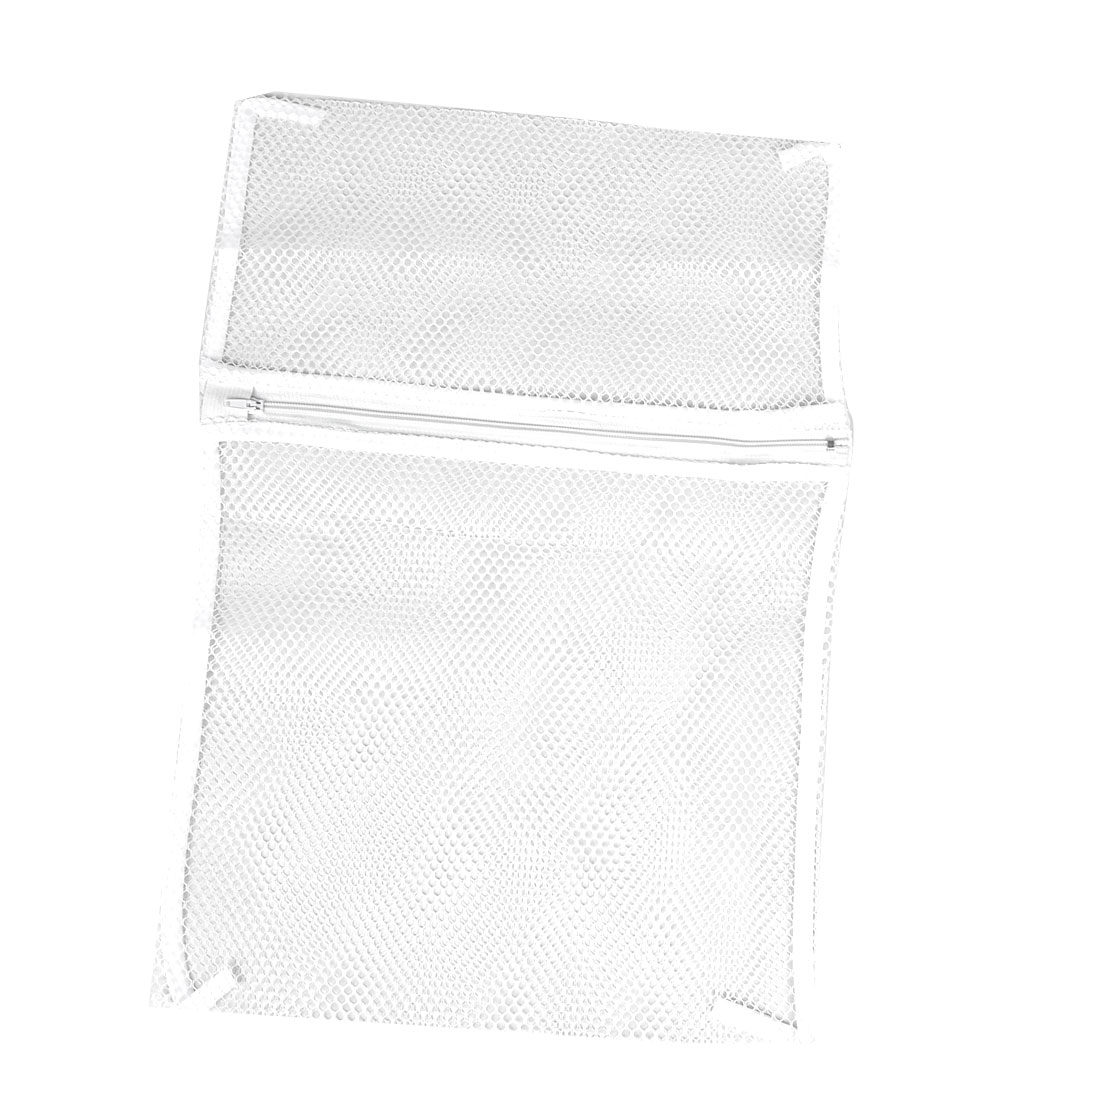 Meshy Design Zip Up Laundry Clothes Washing Bag White 40cm x 30cm